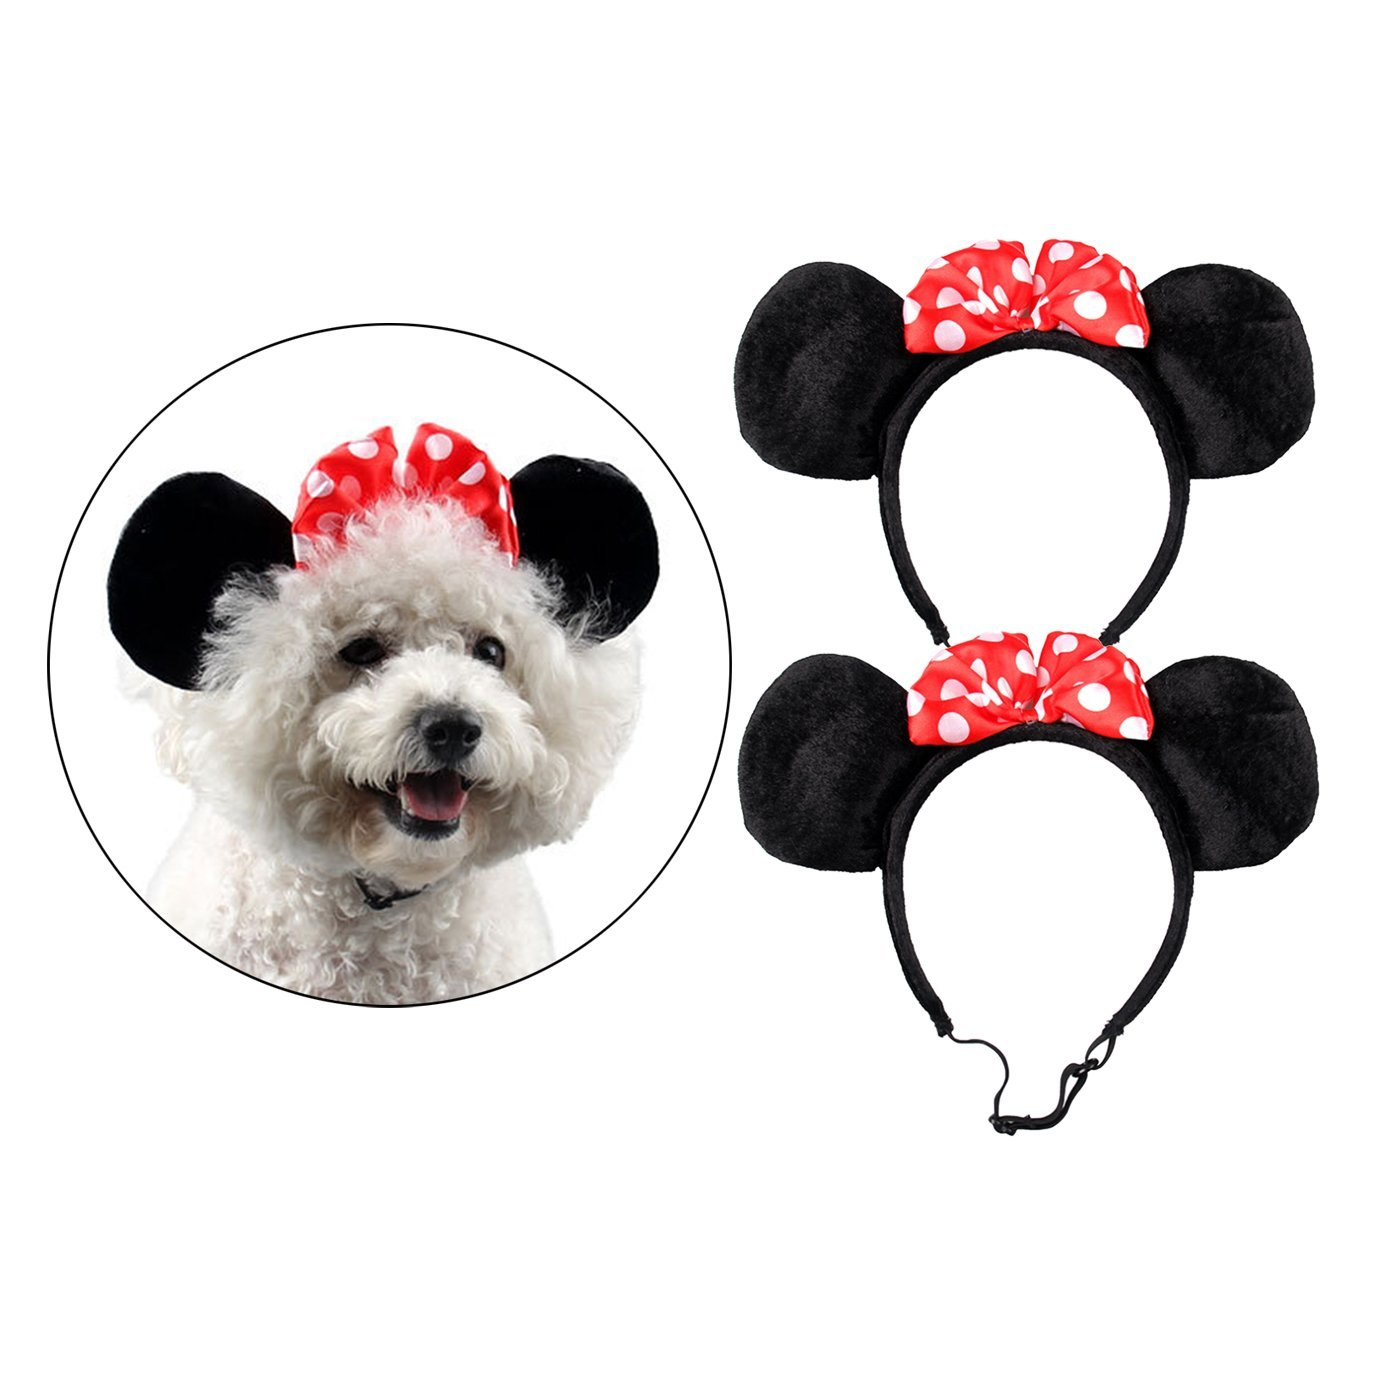 Alfie Pet by Petoga Couture - Percy 2-piece Set Minnie Hat Band for Halloween or Special Events (for Small Dogs & Cats)